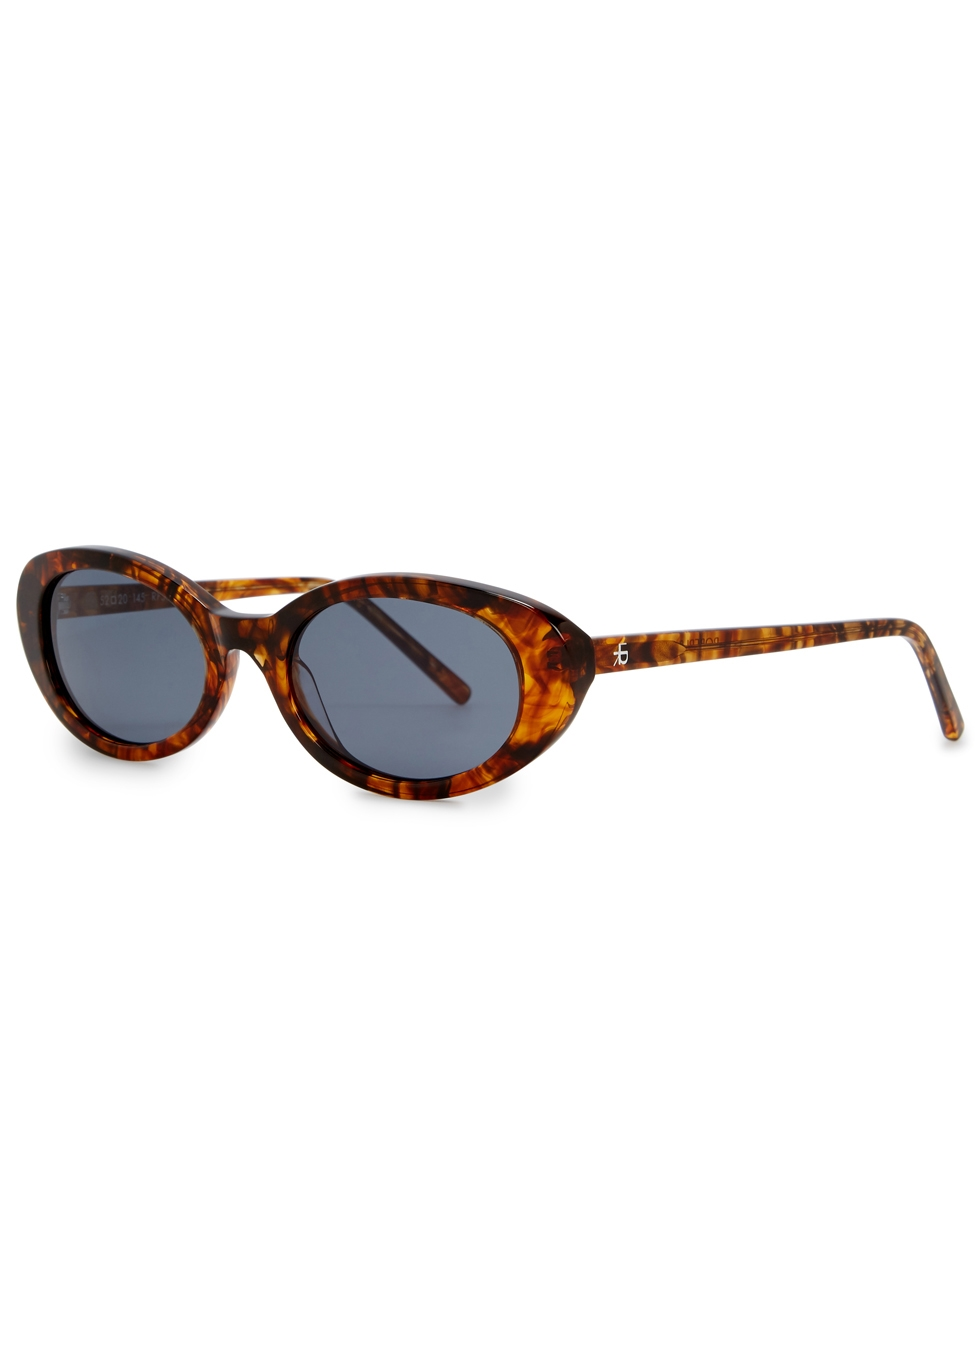 ROBERI AND FRAUD Betty Tortoiseshell Oval-Frame Sunglasses in Havana